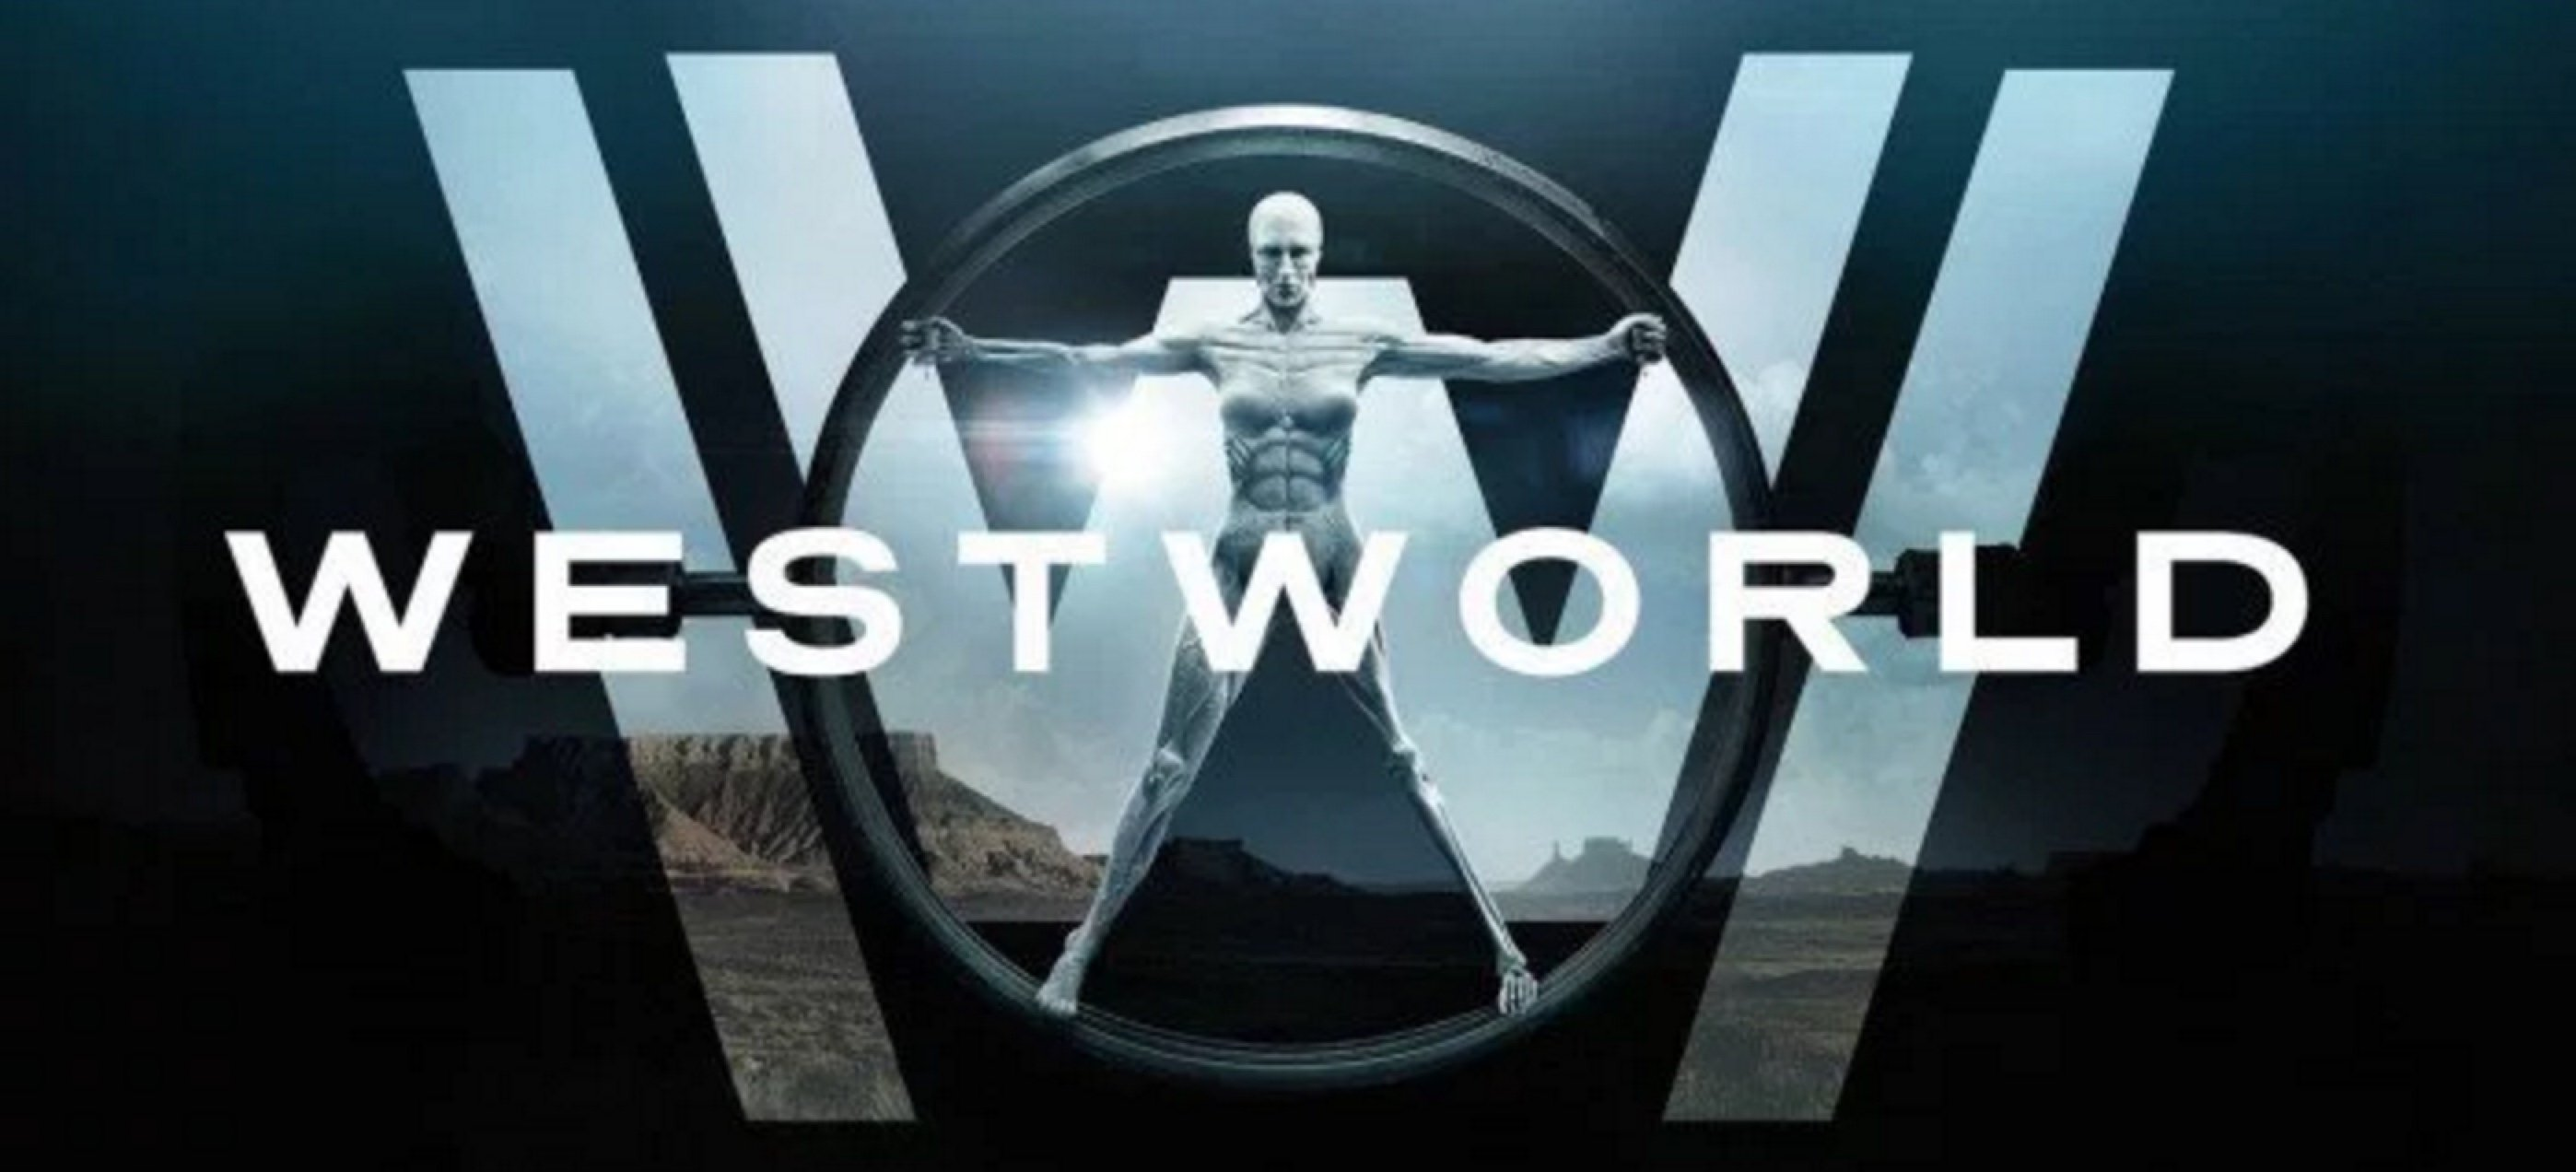 HBO confirma segunda temporada de Westworld